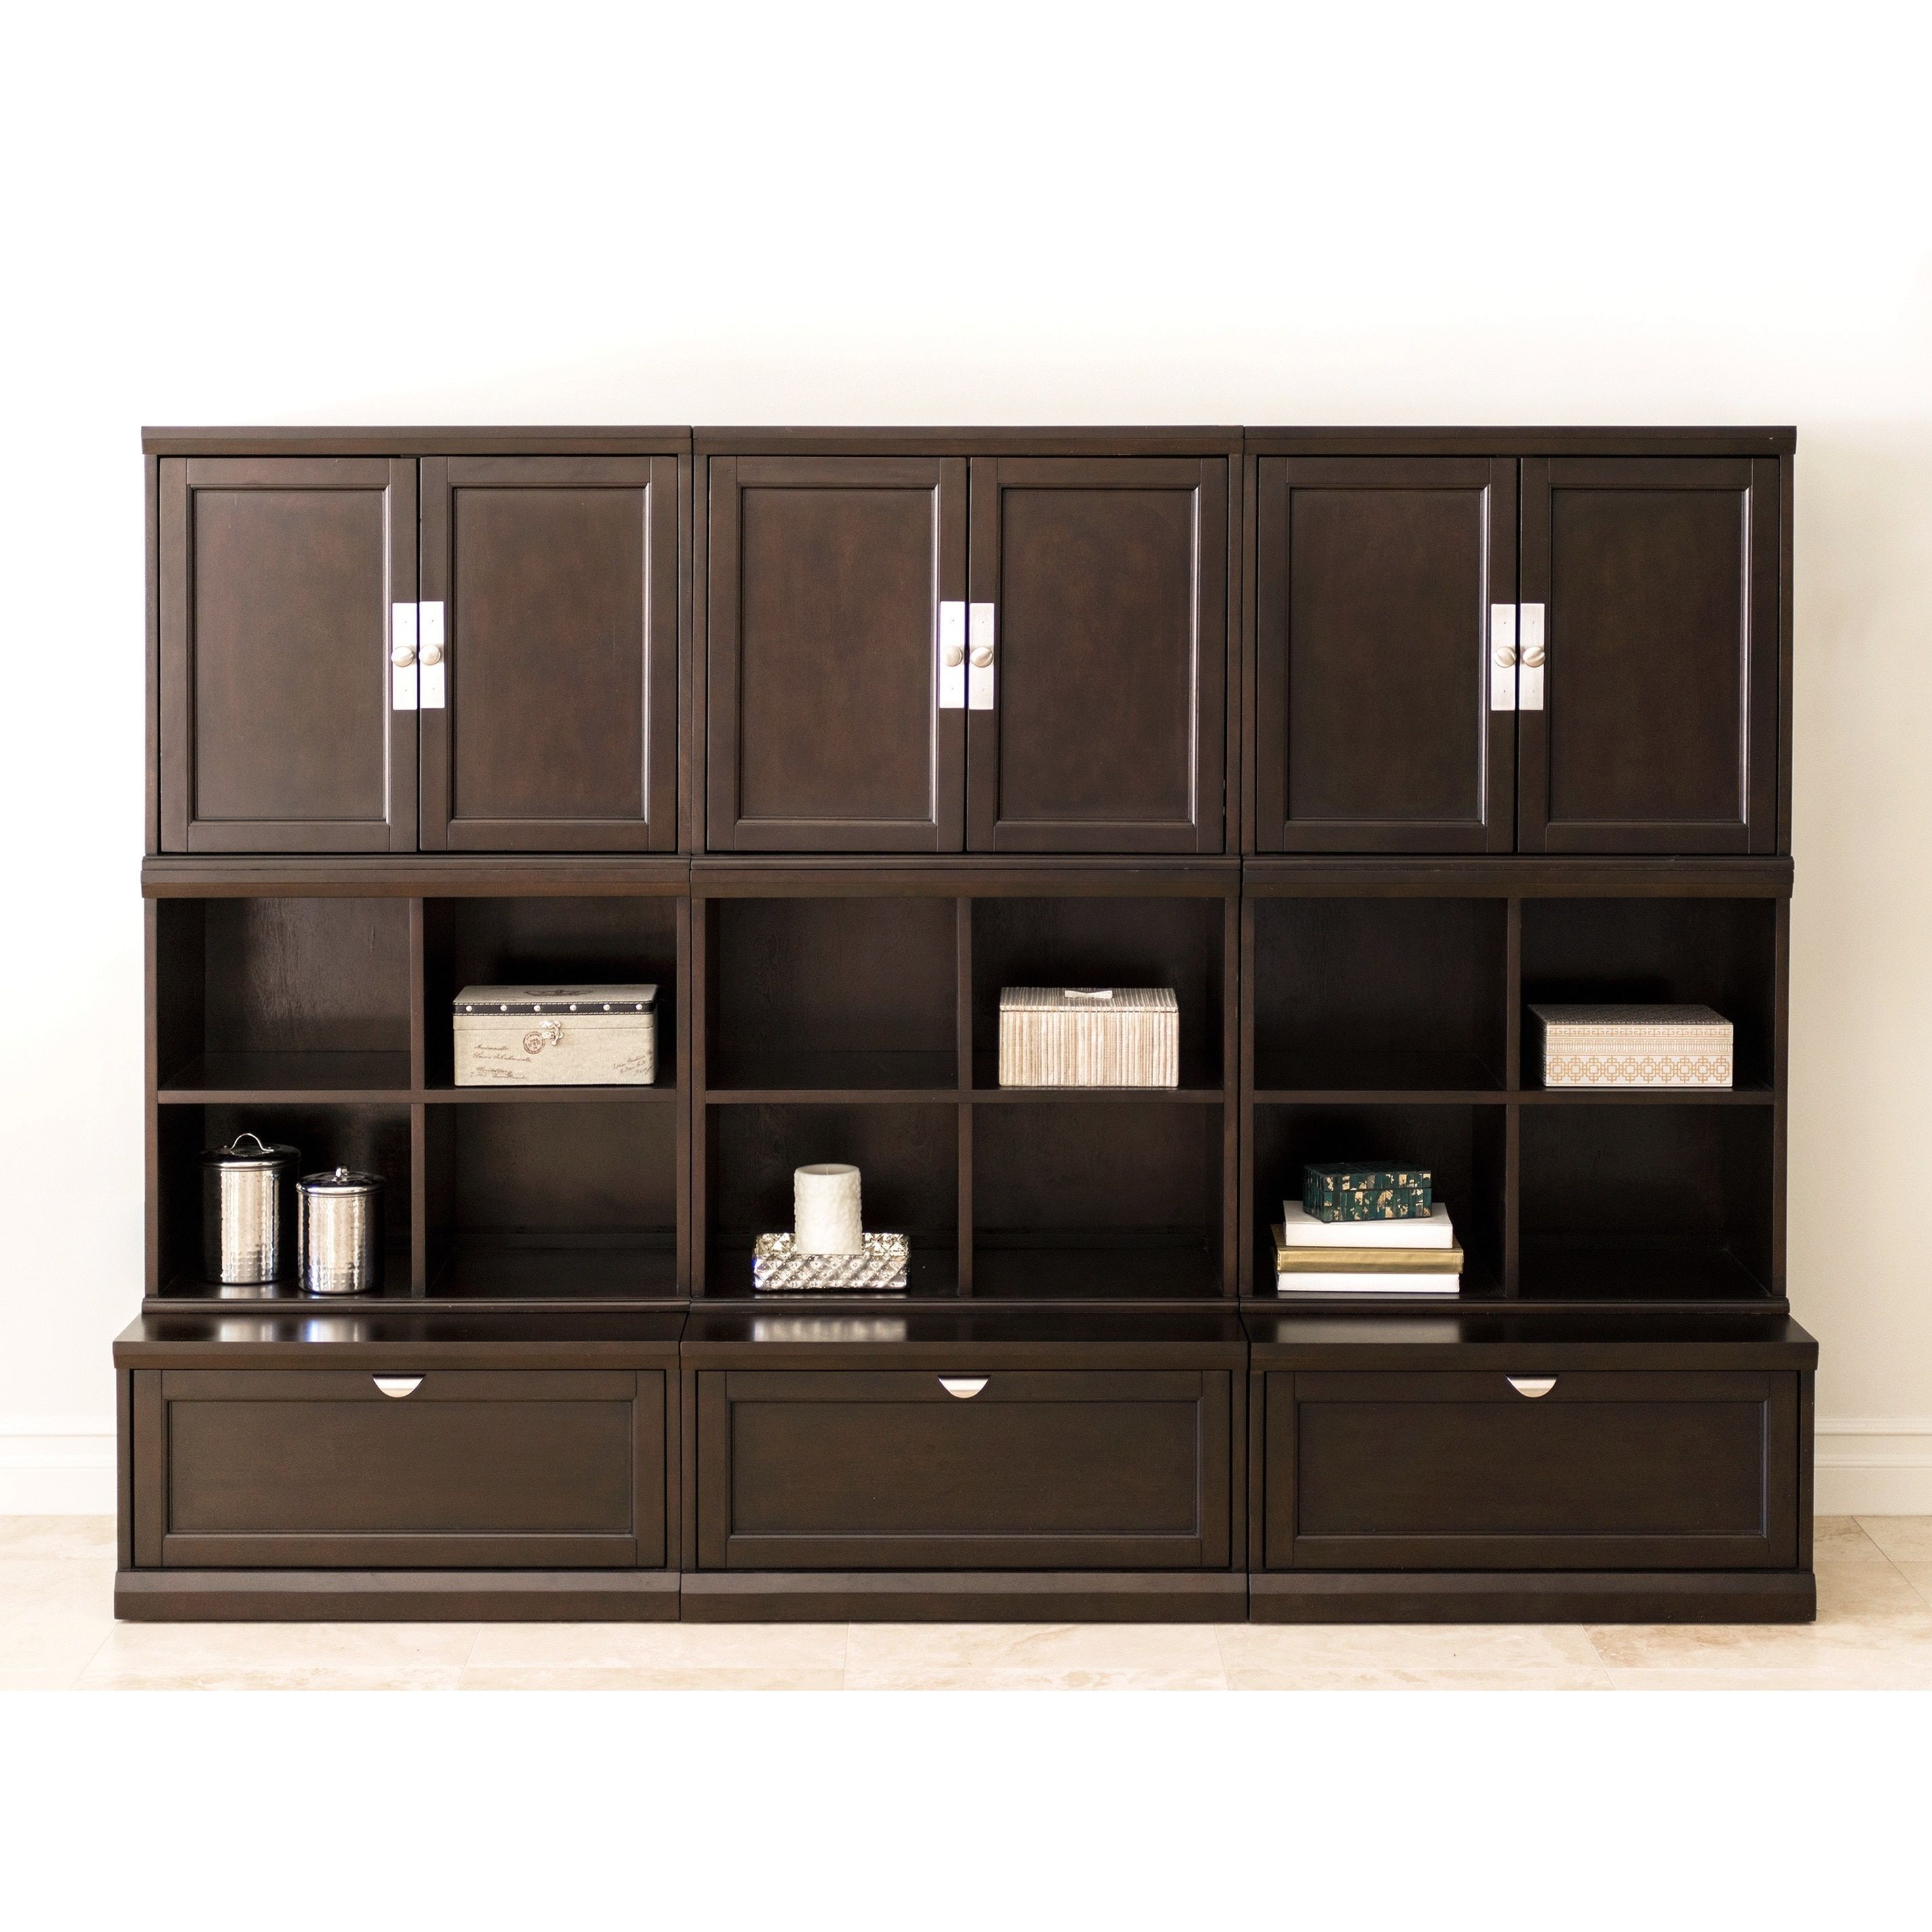 shelf canada bo full furniture ideas home lowes size bookcases com of brown uncommon cool in charm dazzling floating bookshelves bookcase bookshelf stunning glamorous charming shop arresting finish image uncategorized black espresso at